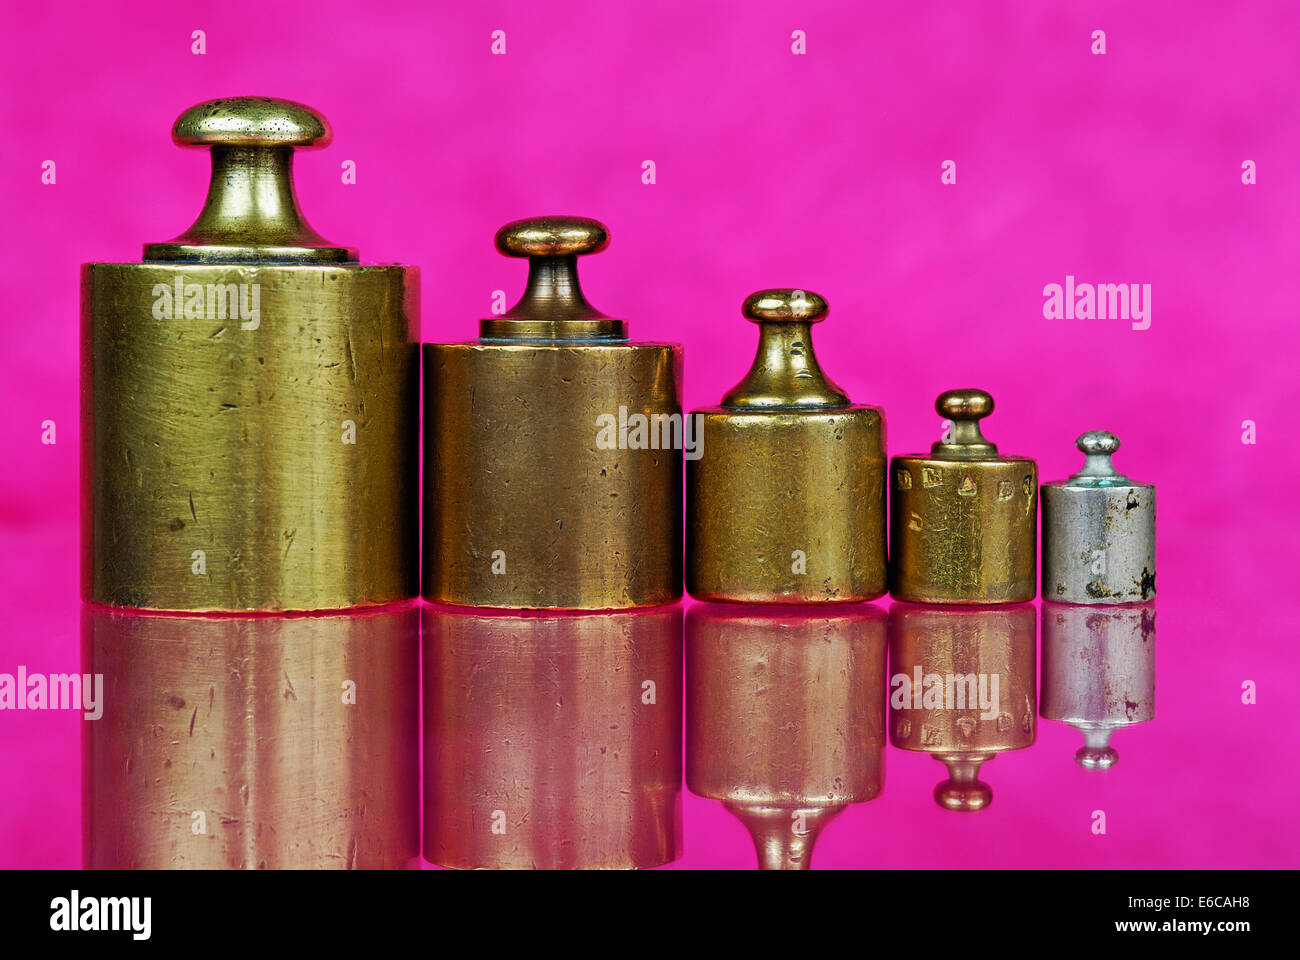 Five old-fashioned antique copper weights in a row - Stock Image